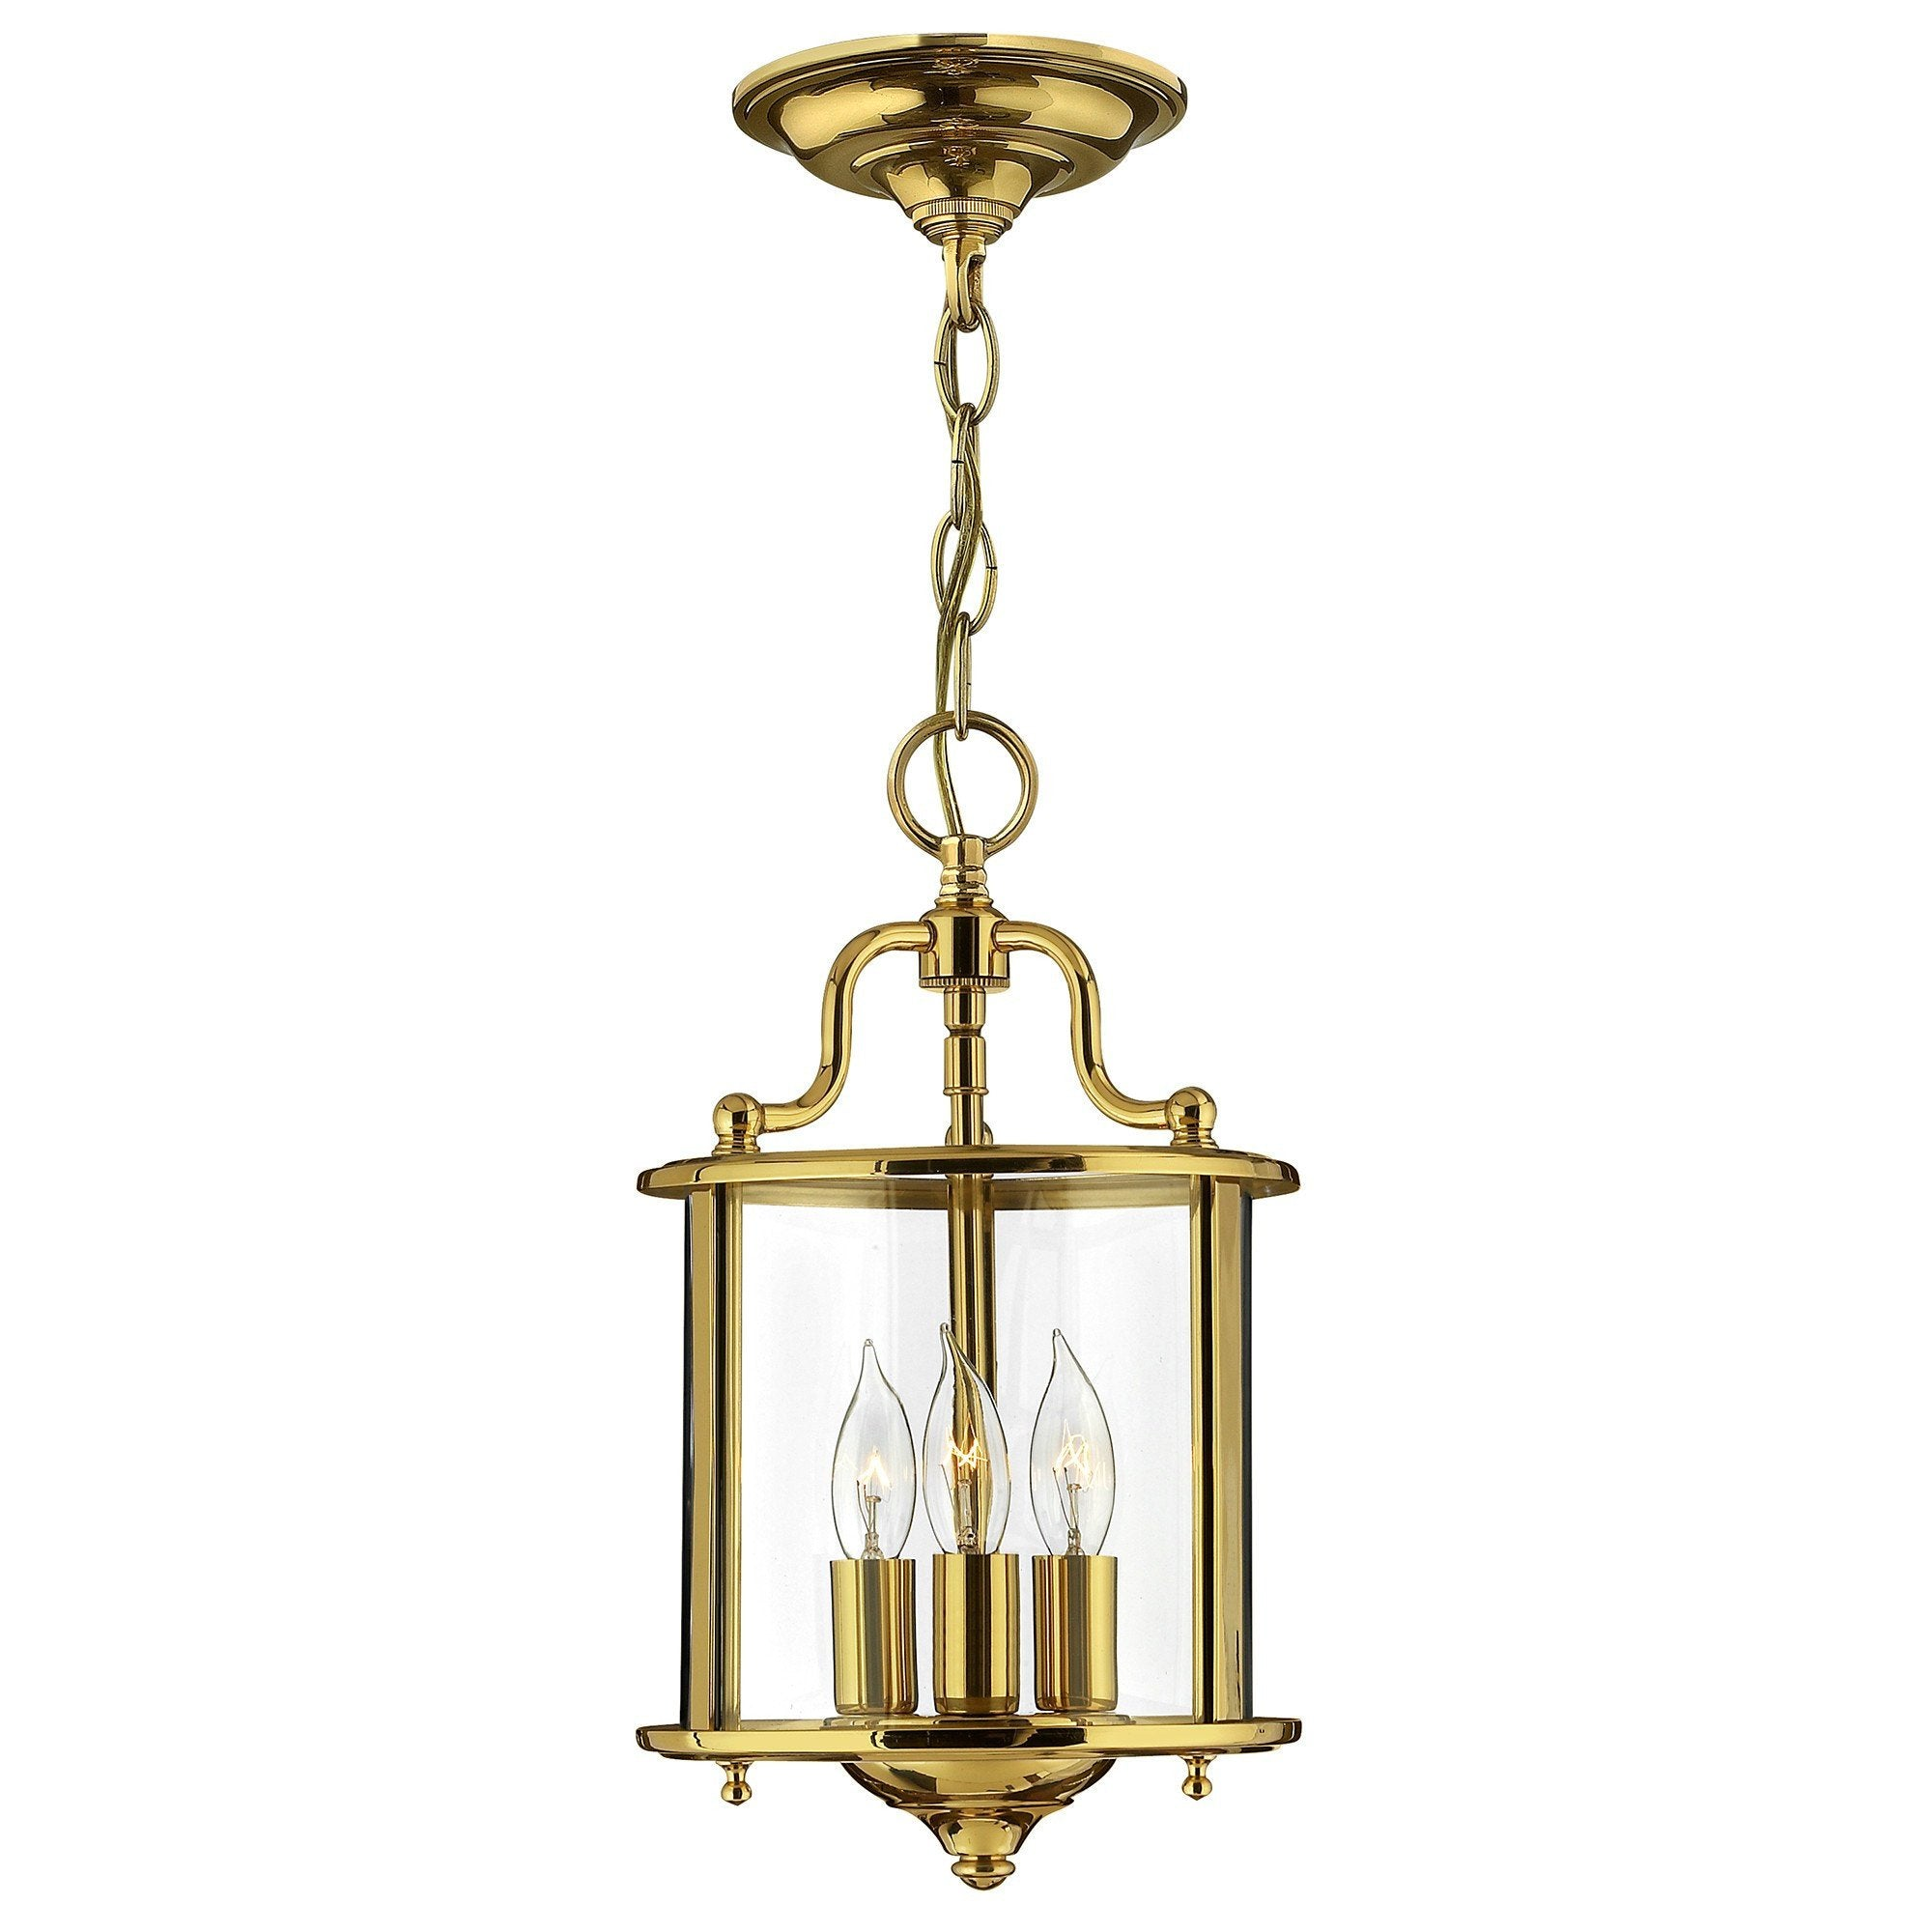 Hinkely Gentry Small Pendant Light - London Lighting - 1